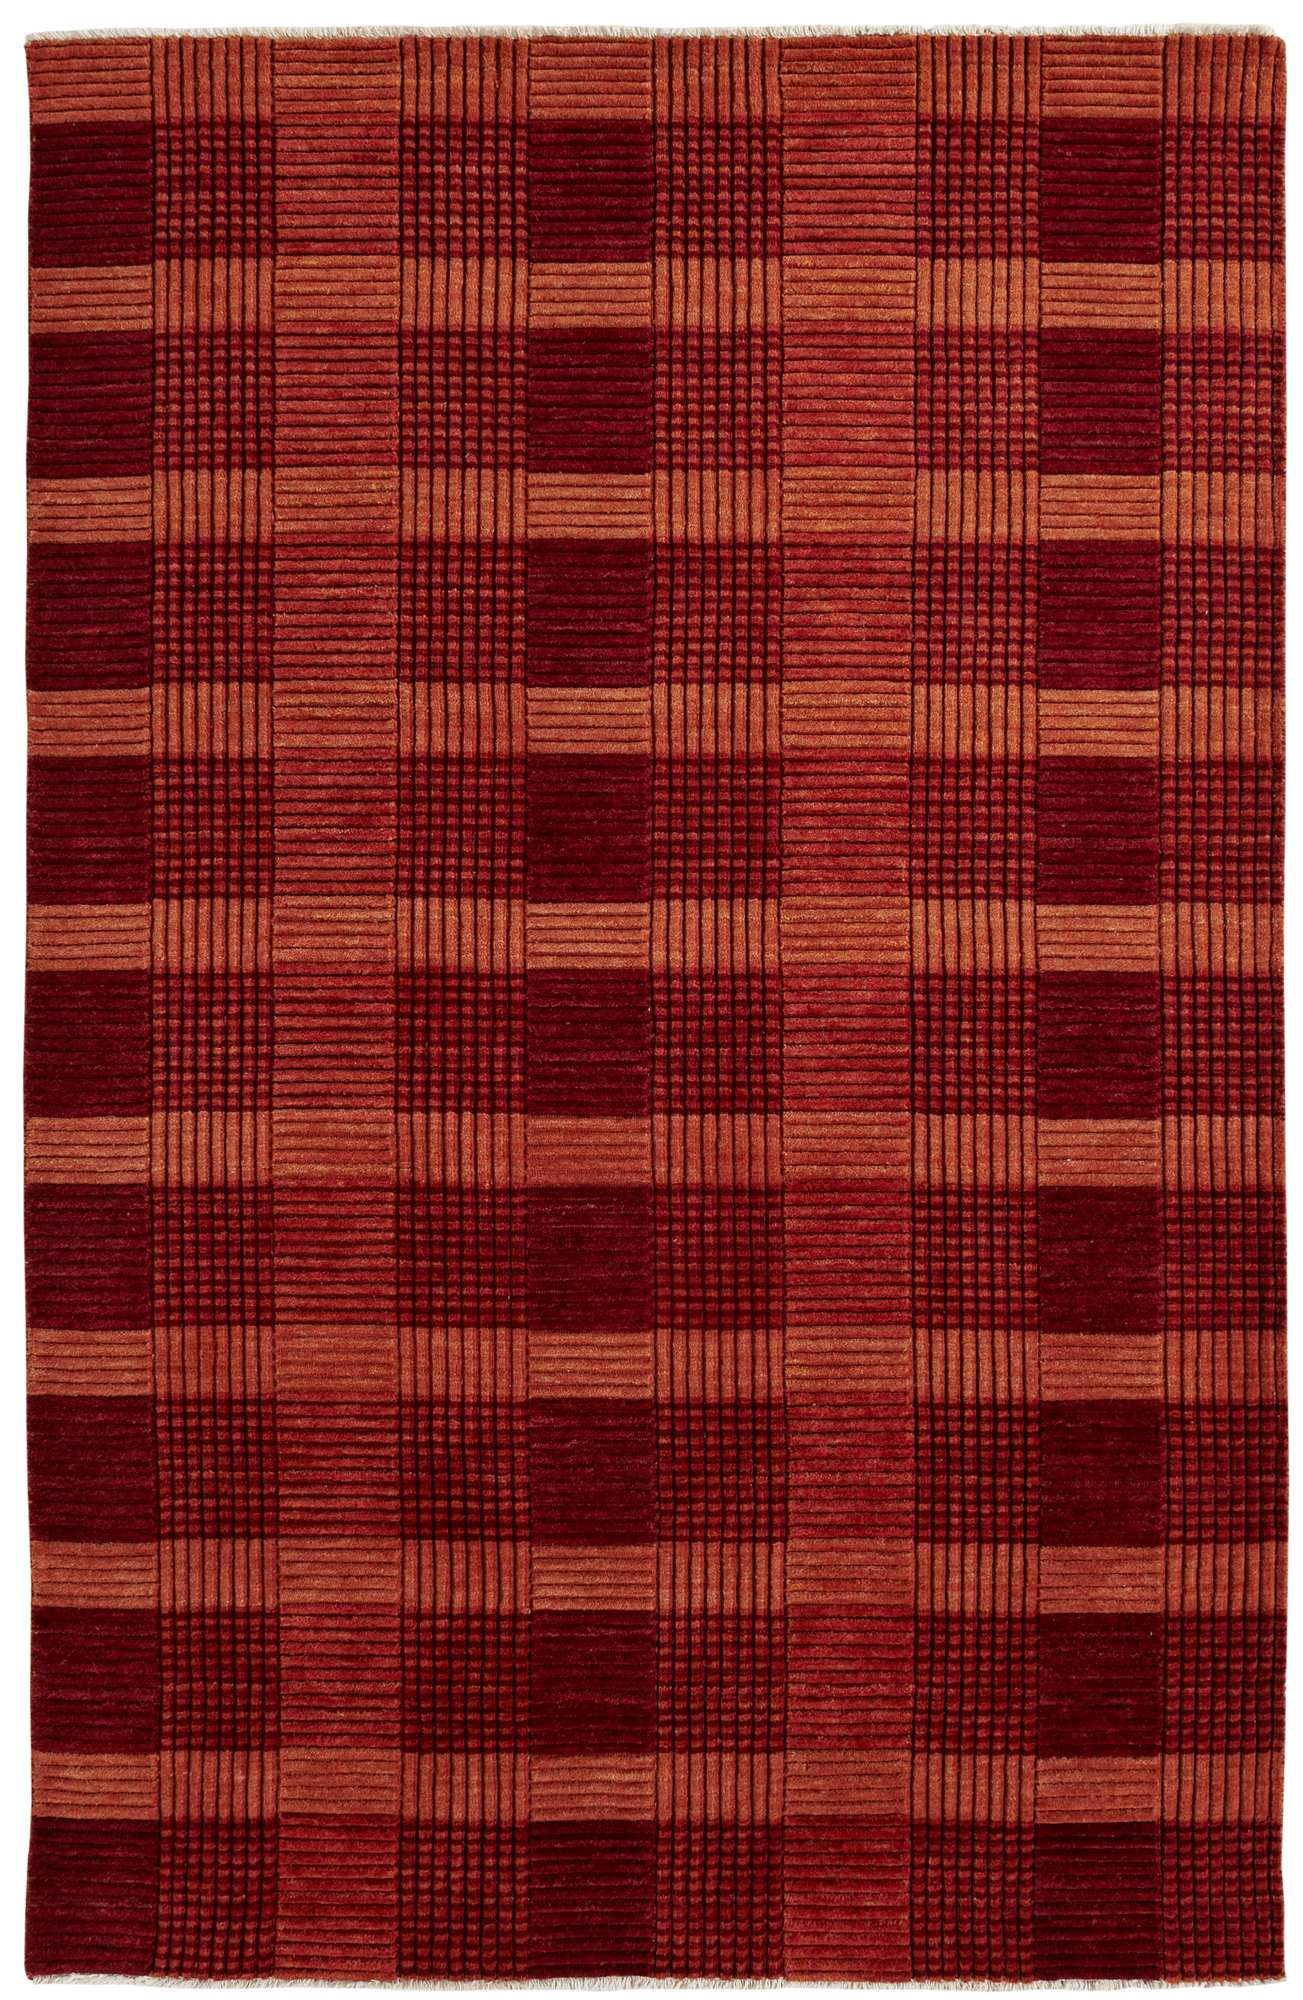 Dynamic Rugs Lounge Geometric Red 9899 Area Rug